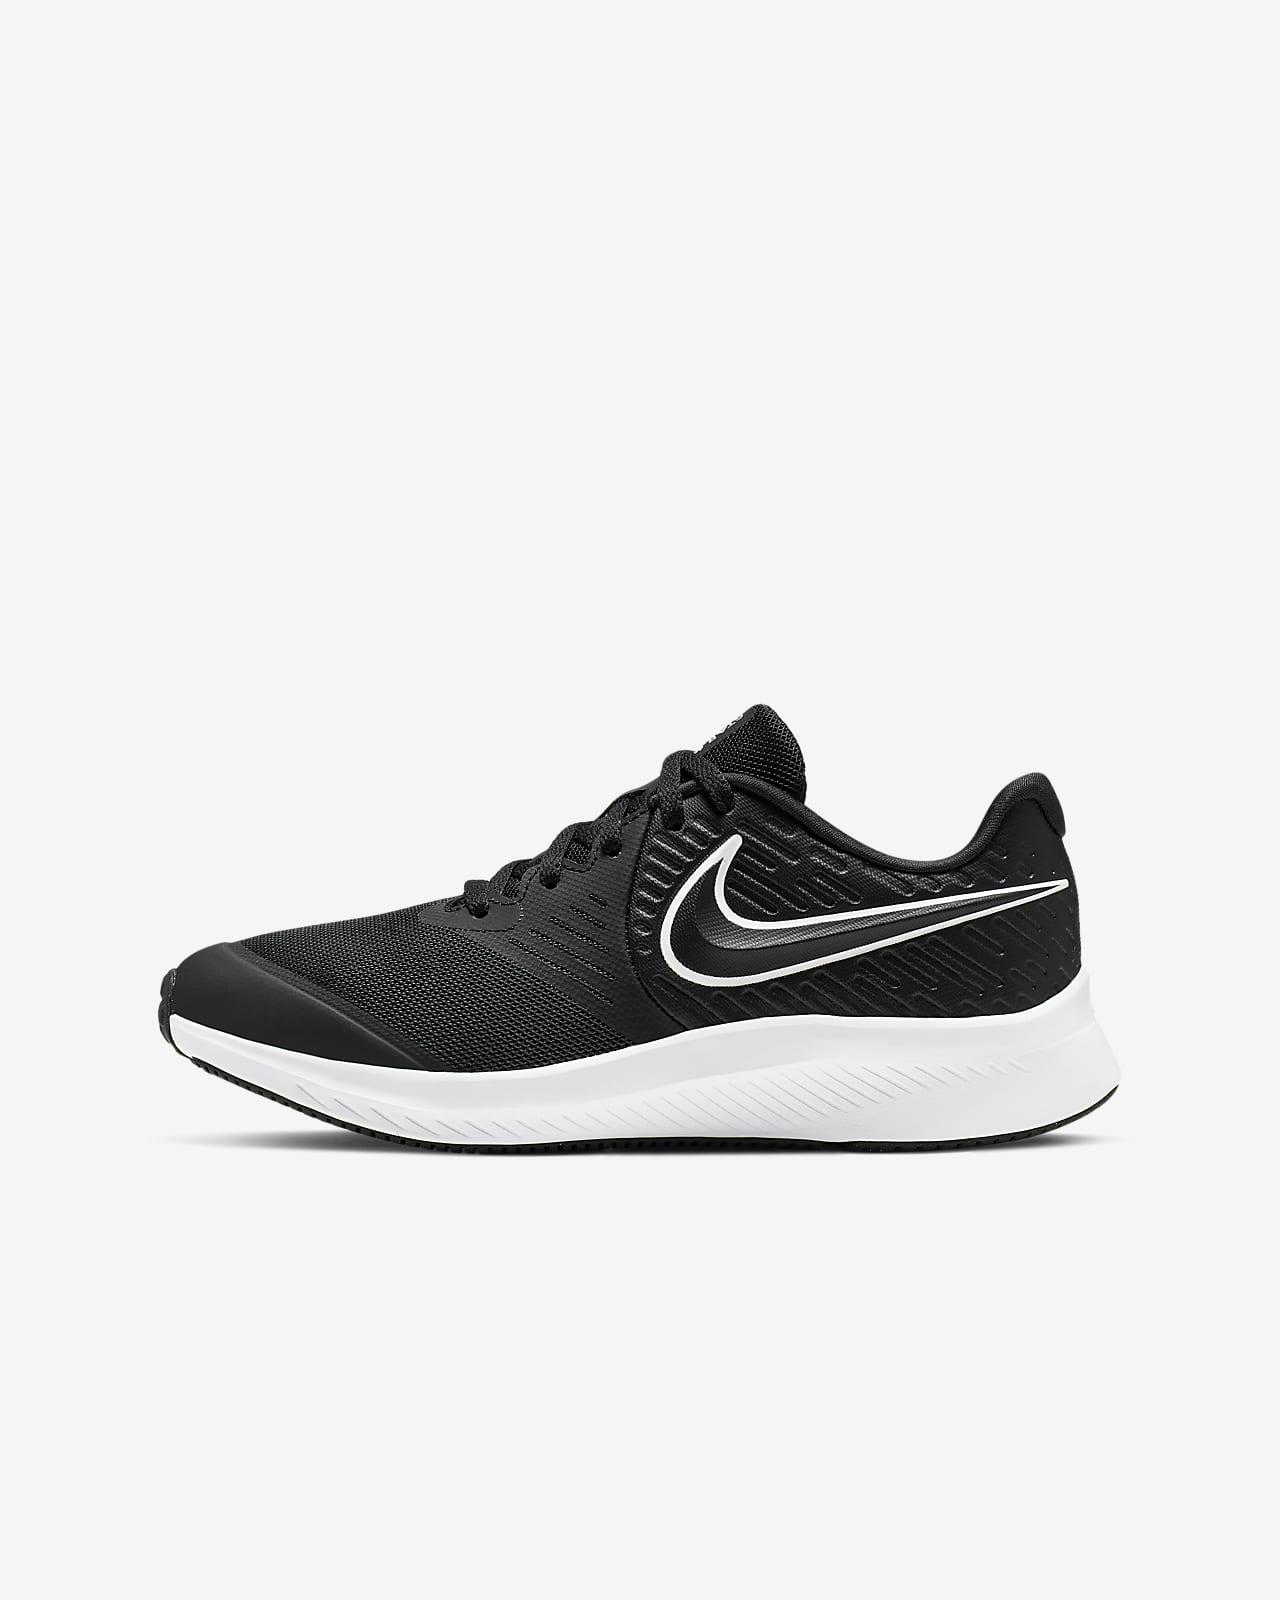 Pies suaves nicotina Para llevar  Nike Star Runner 2 Older Kids' Running Shoe. Nike LU